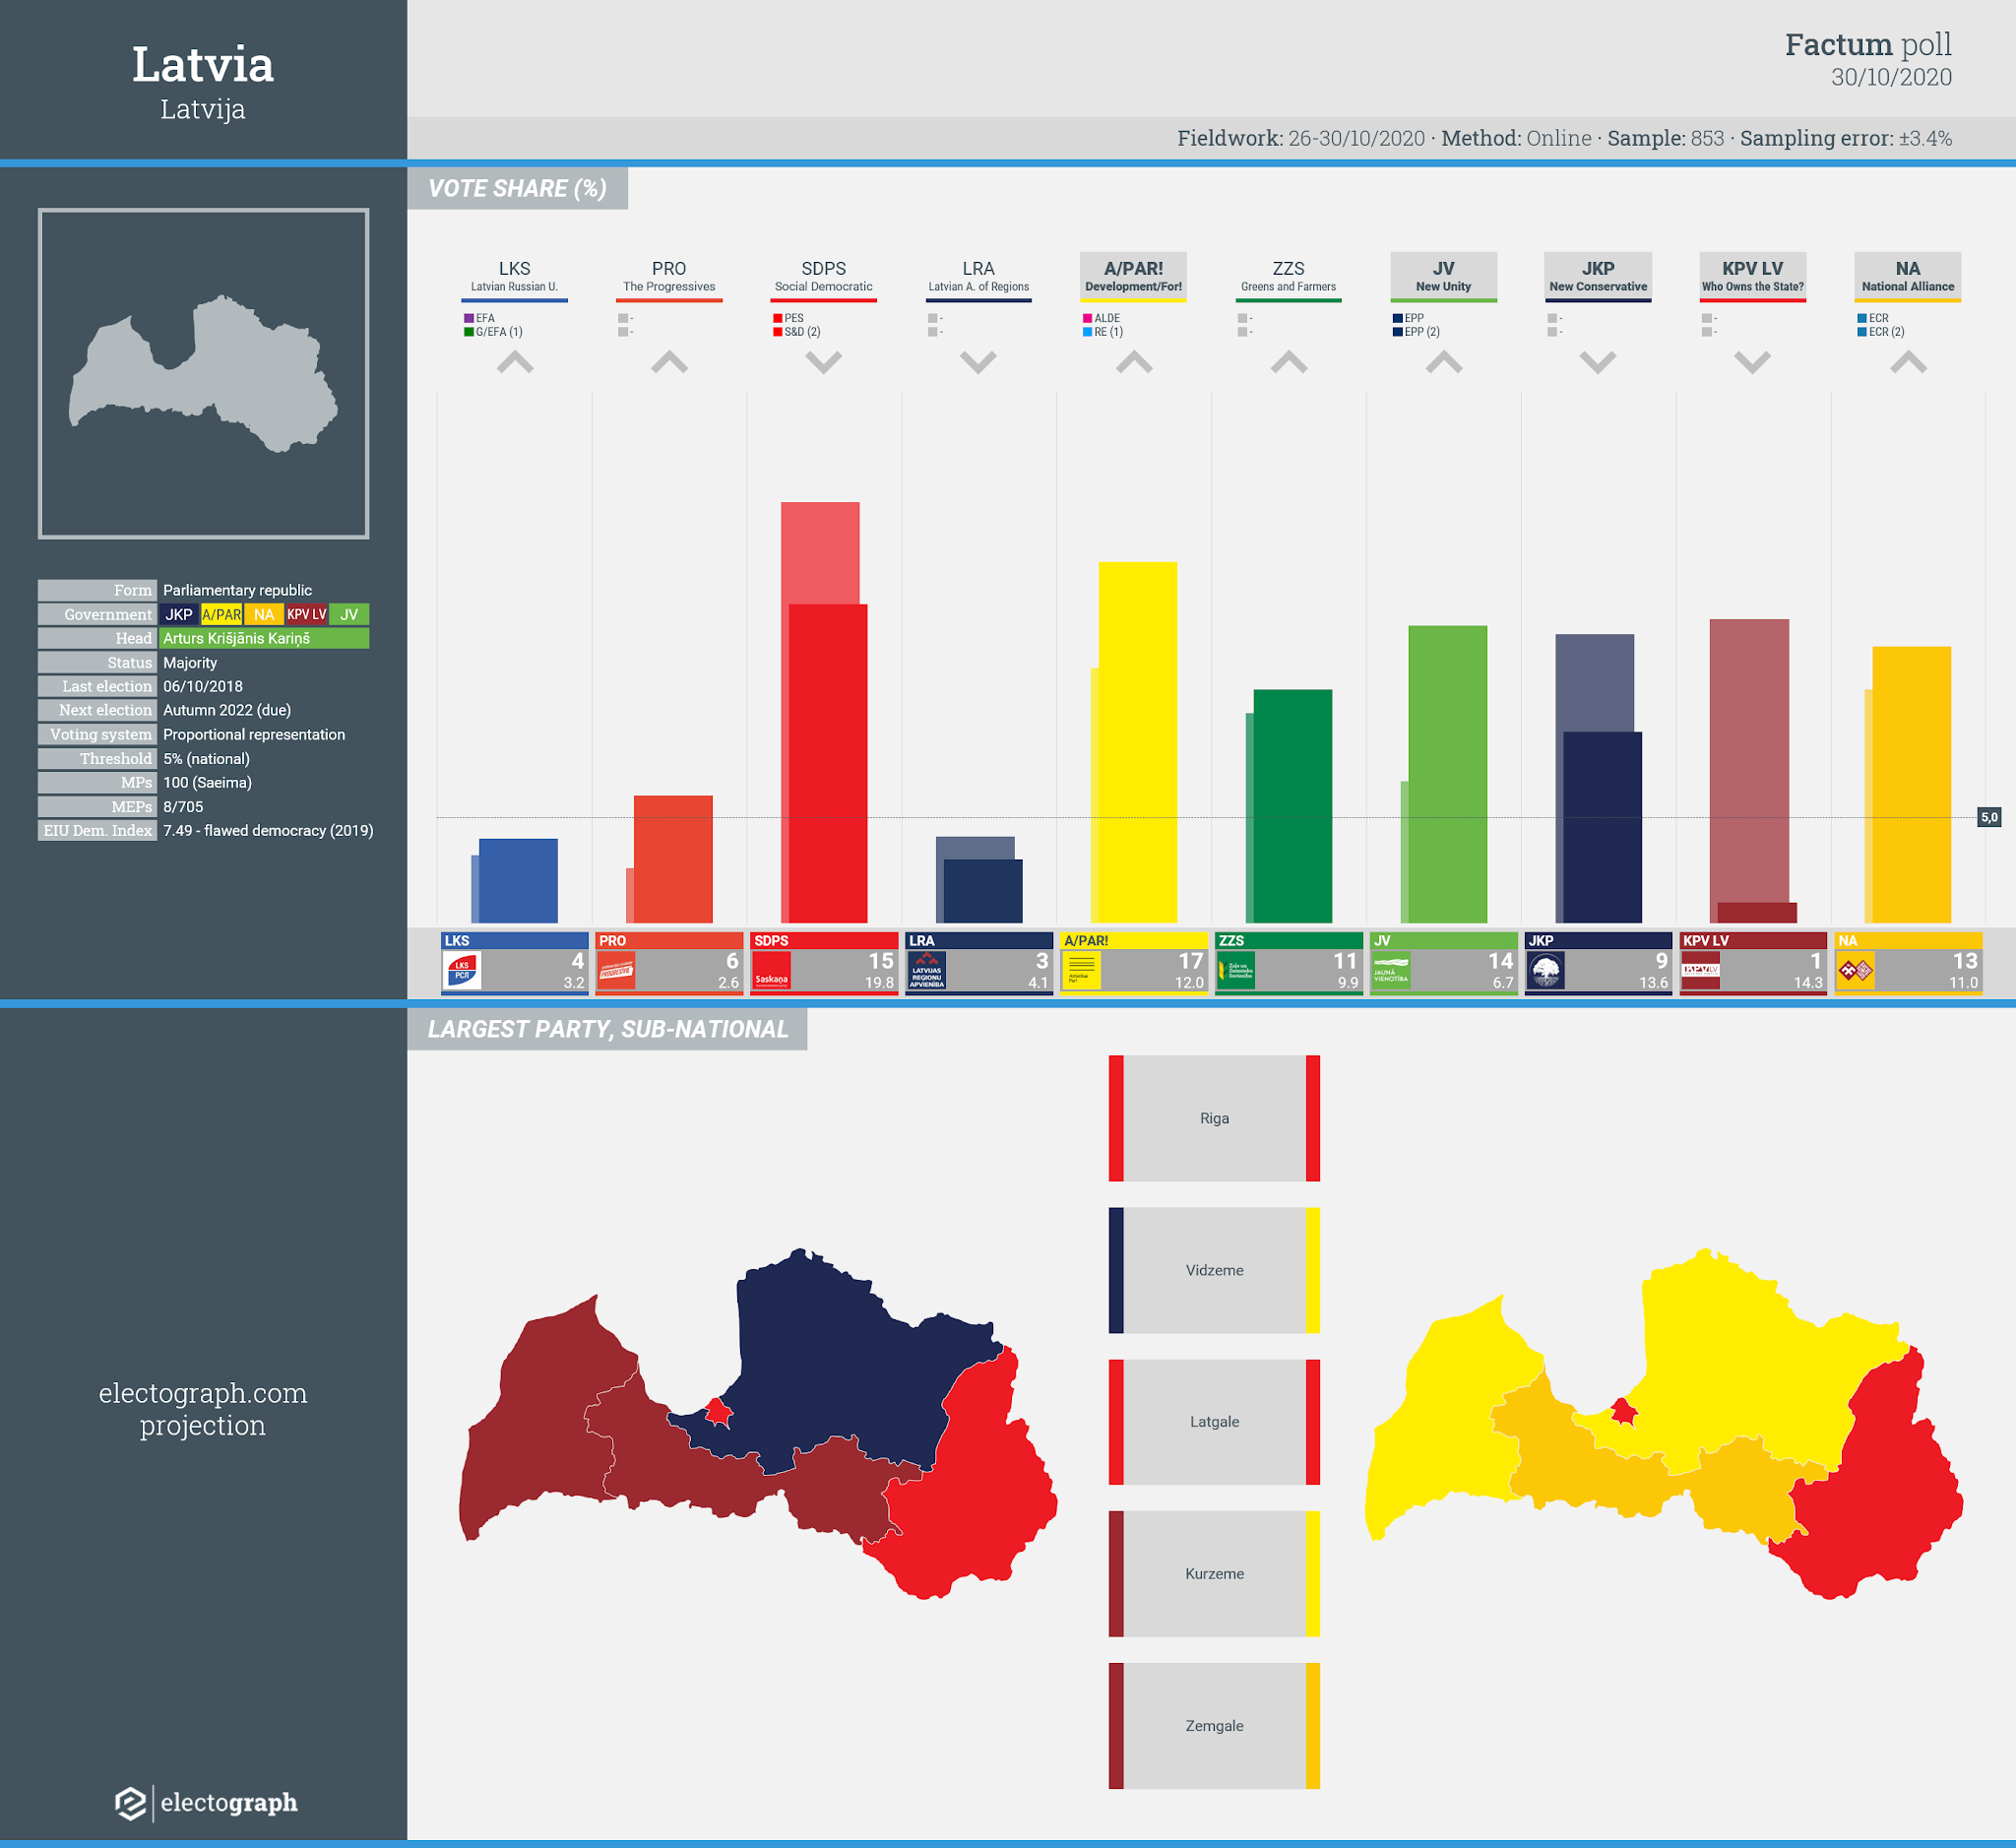 LATVIA: Factum poll chart, 30 October 2020